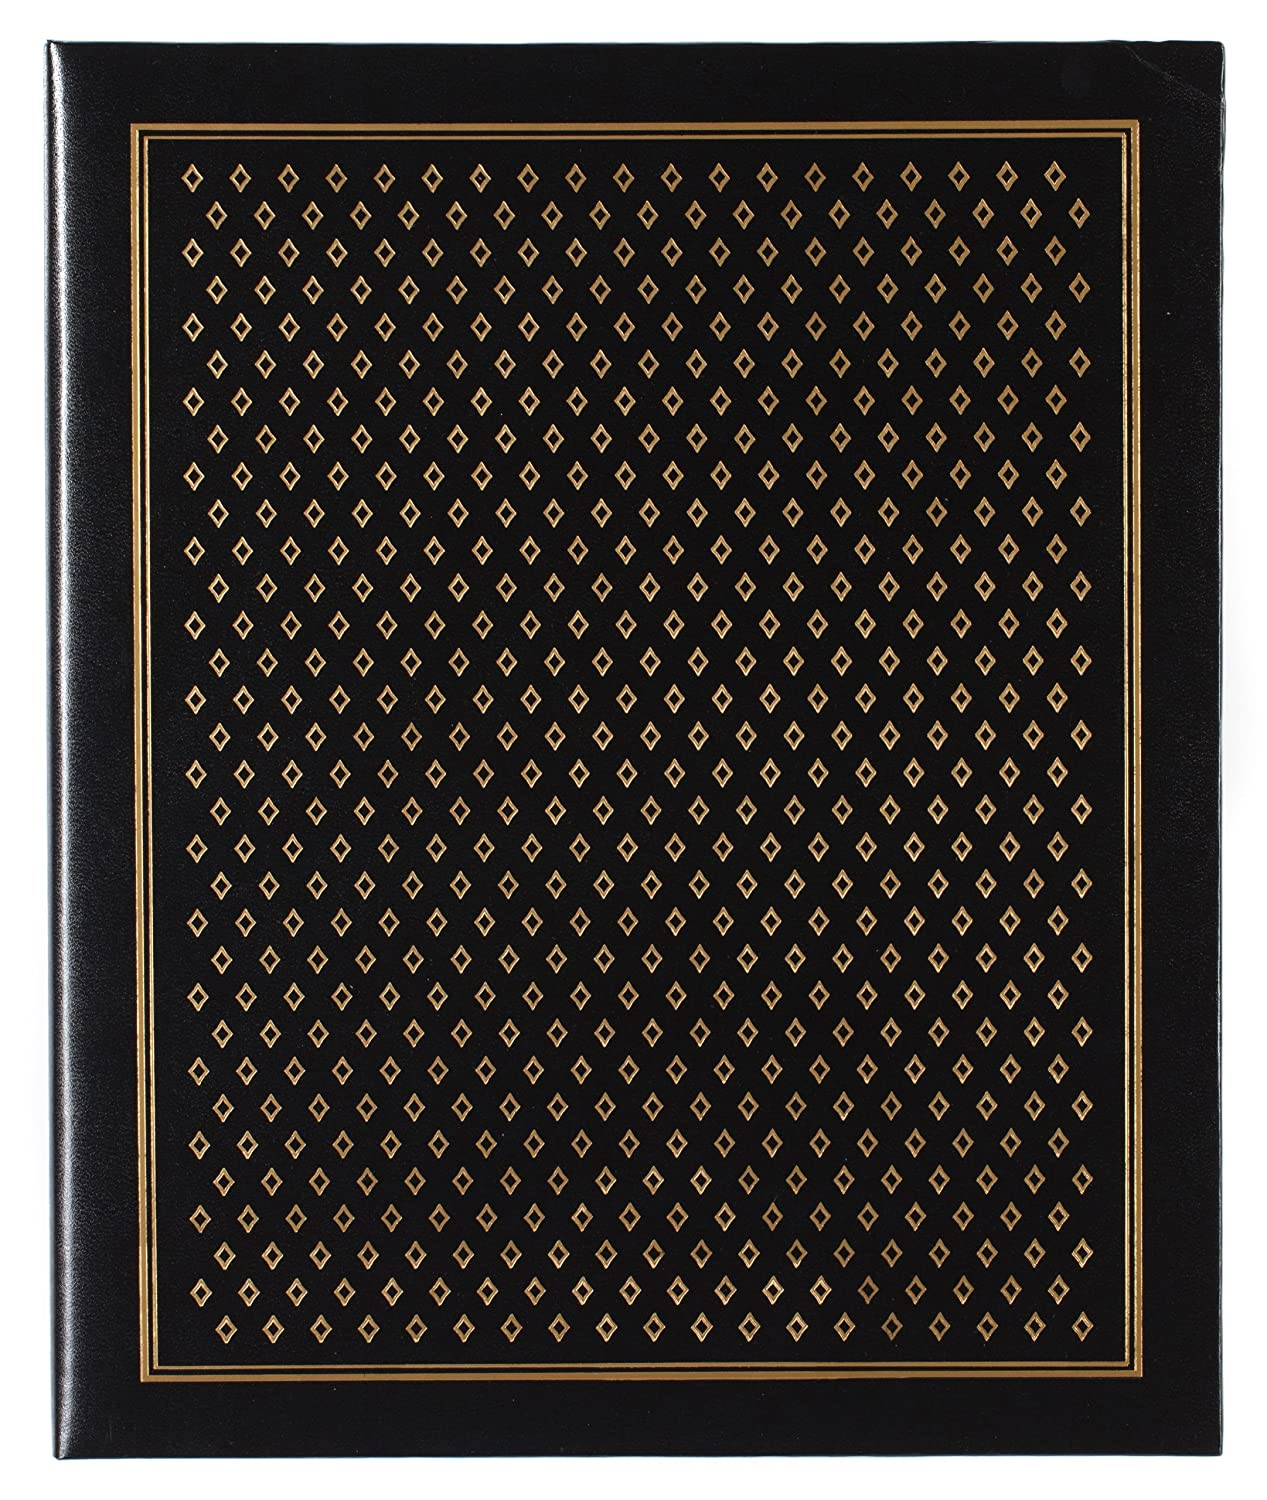 Pinnacle Frames and Accents Black Diamond 100-Page Magnetic Photo Album NBG Home R80834F